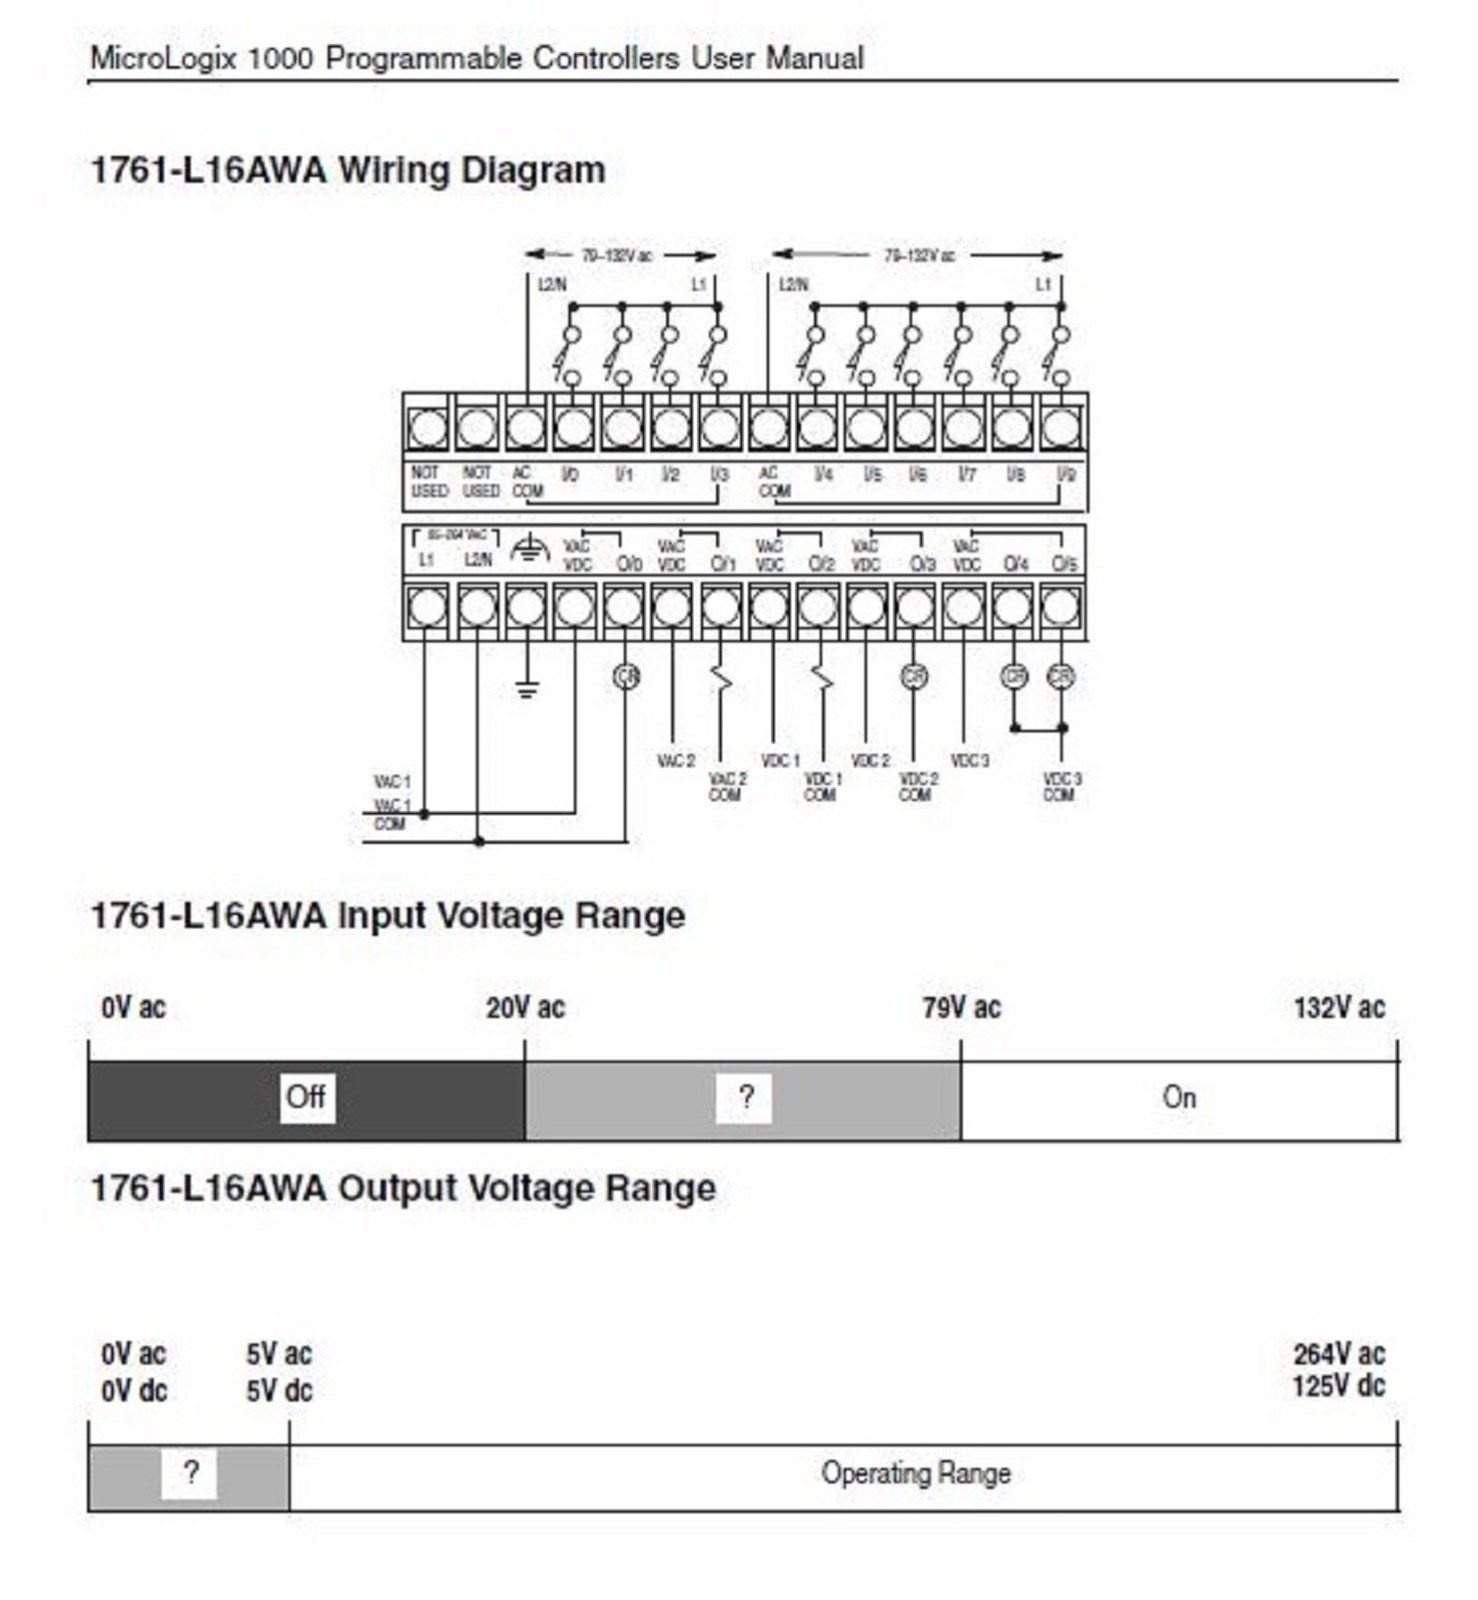 1761 cbl pm02 wiring diagram Collection-Micrologix 1000 Wiring Diagram Unique Outstanding Micrologix 1000 Programming Picture Collection 9-f